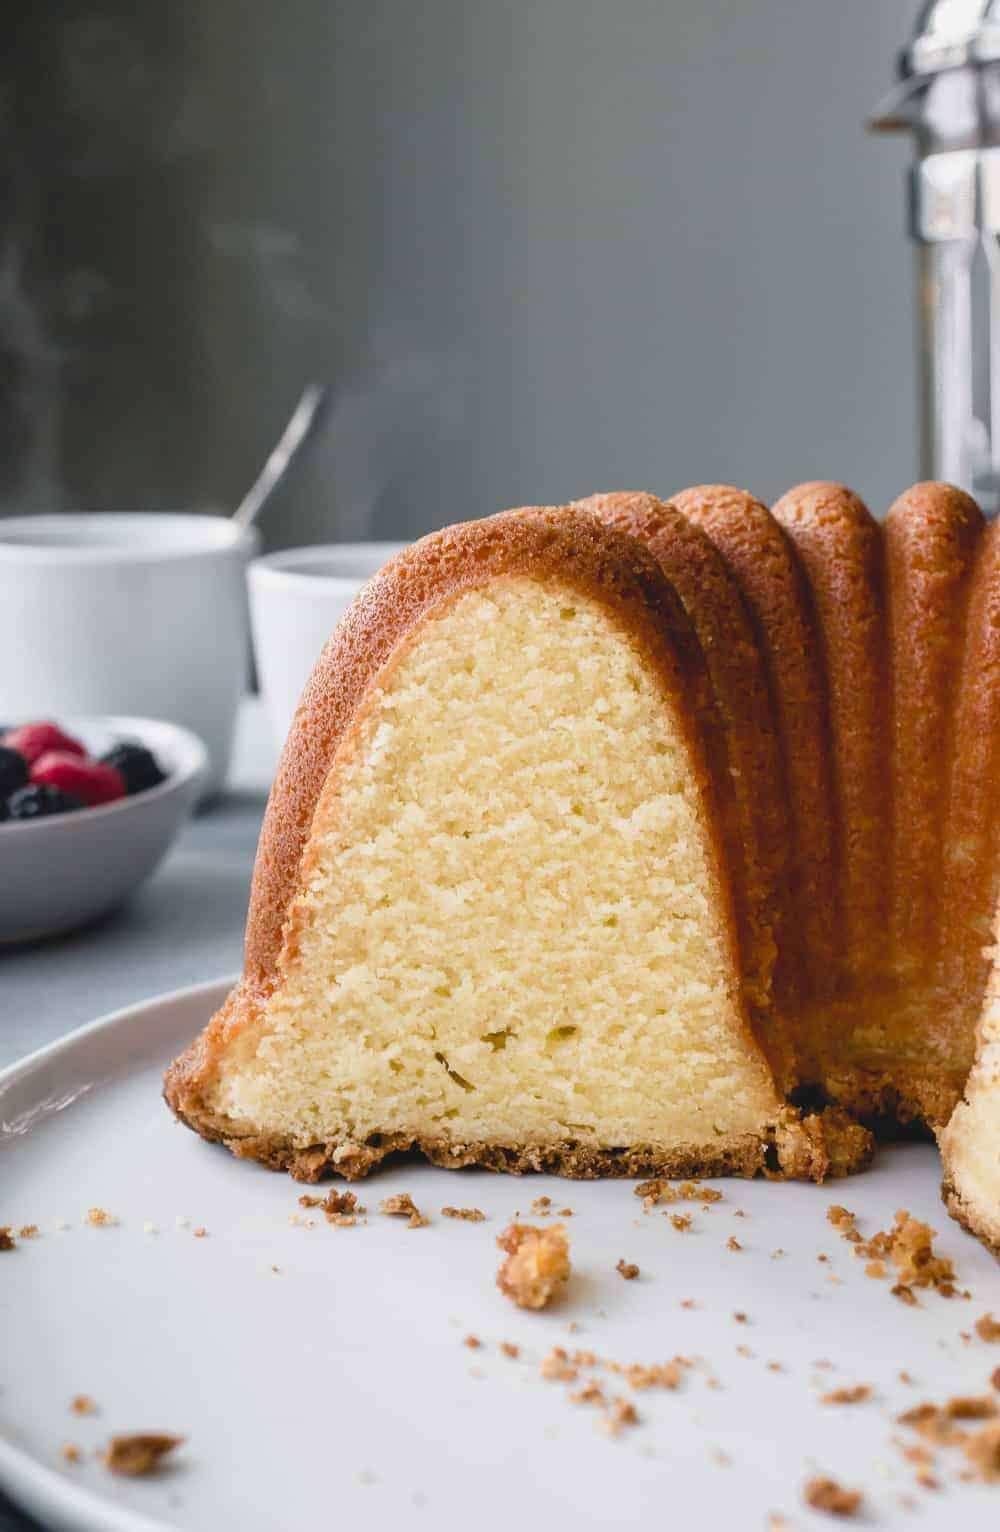 Sliced 7up pound cake on a cake plate in front of a bowl of berries